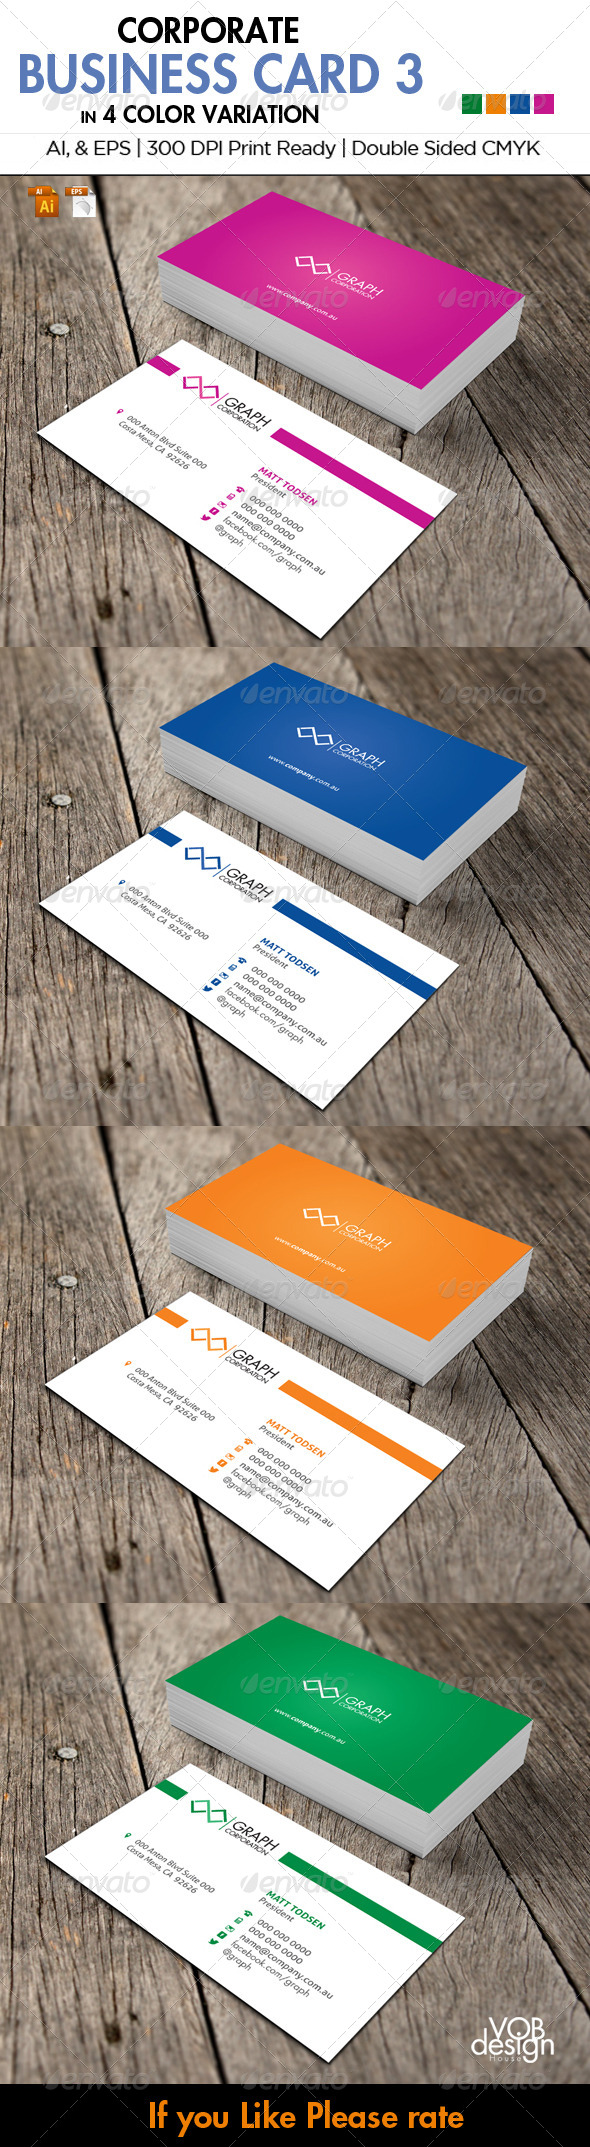 GraphicRiver Corporate Business Card 3 5947647